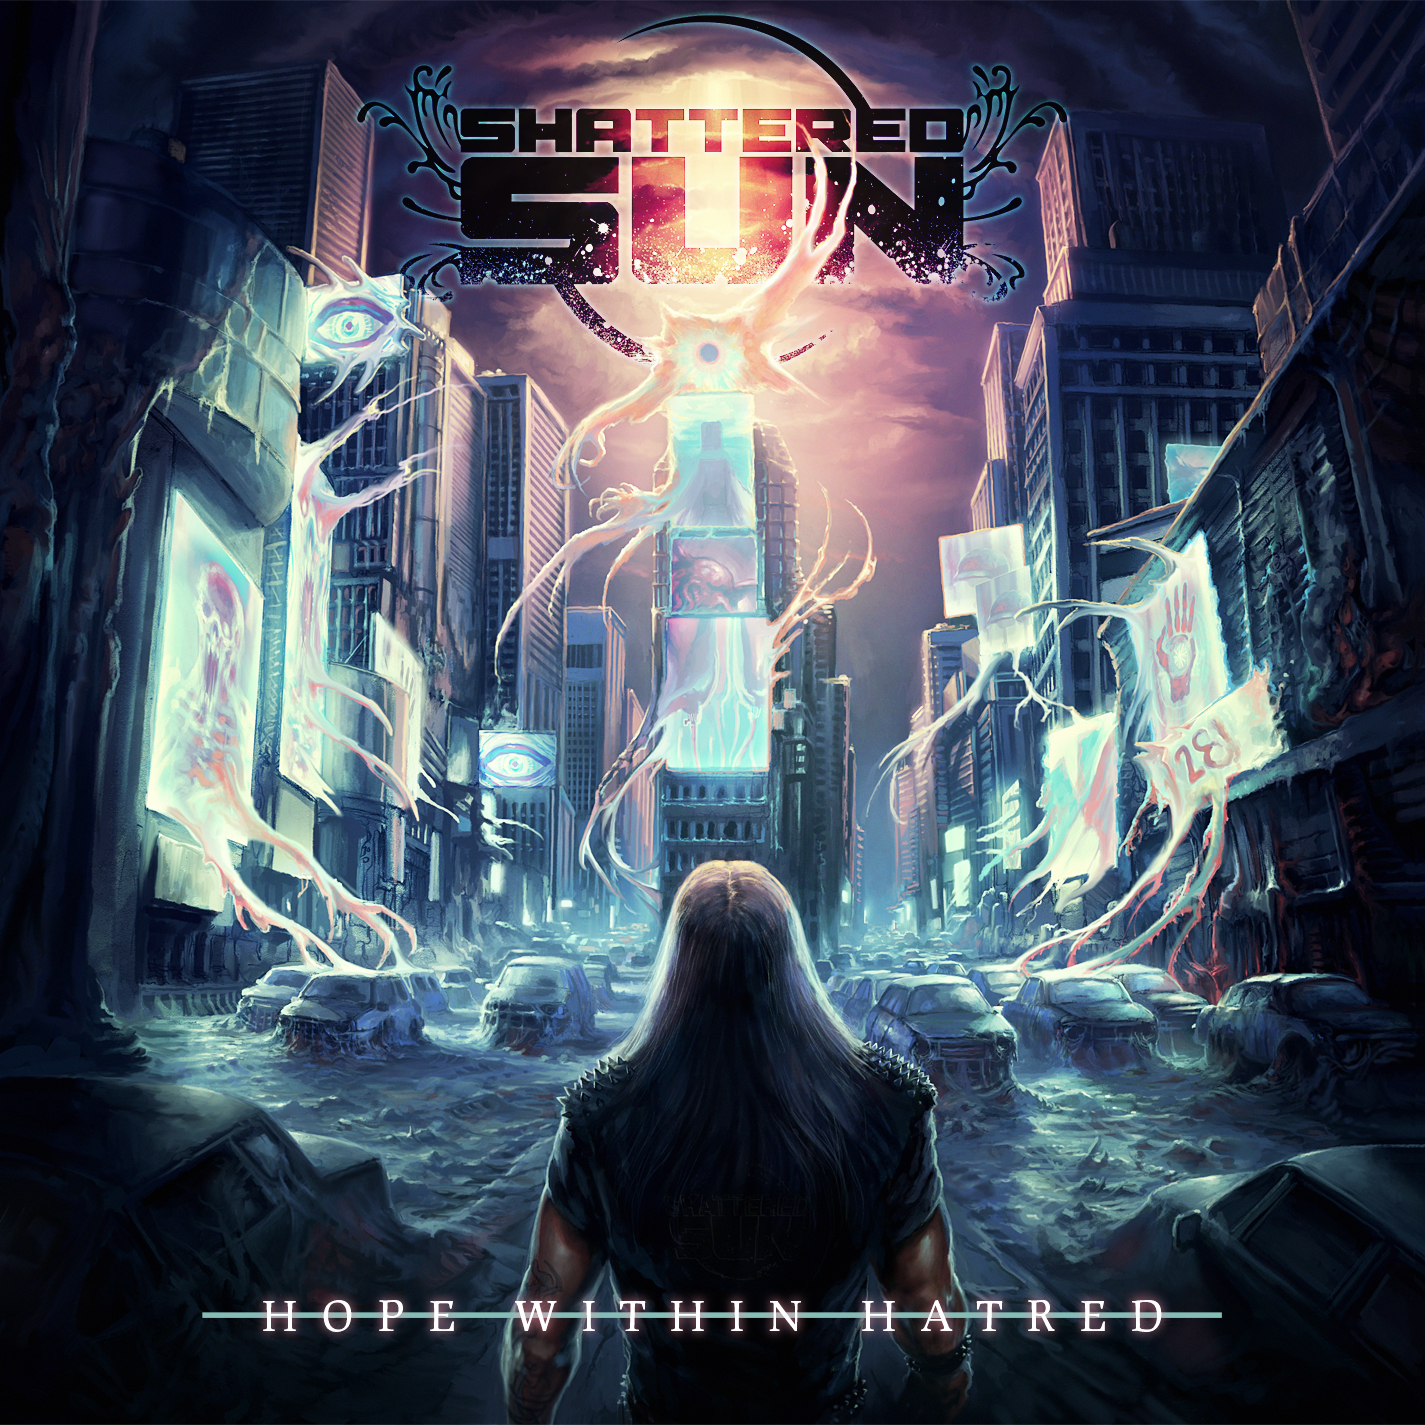 Shattered Sun <br/>Hope within hatred